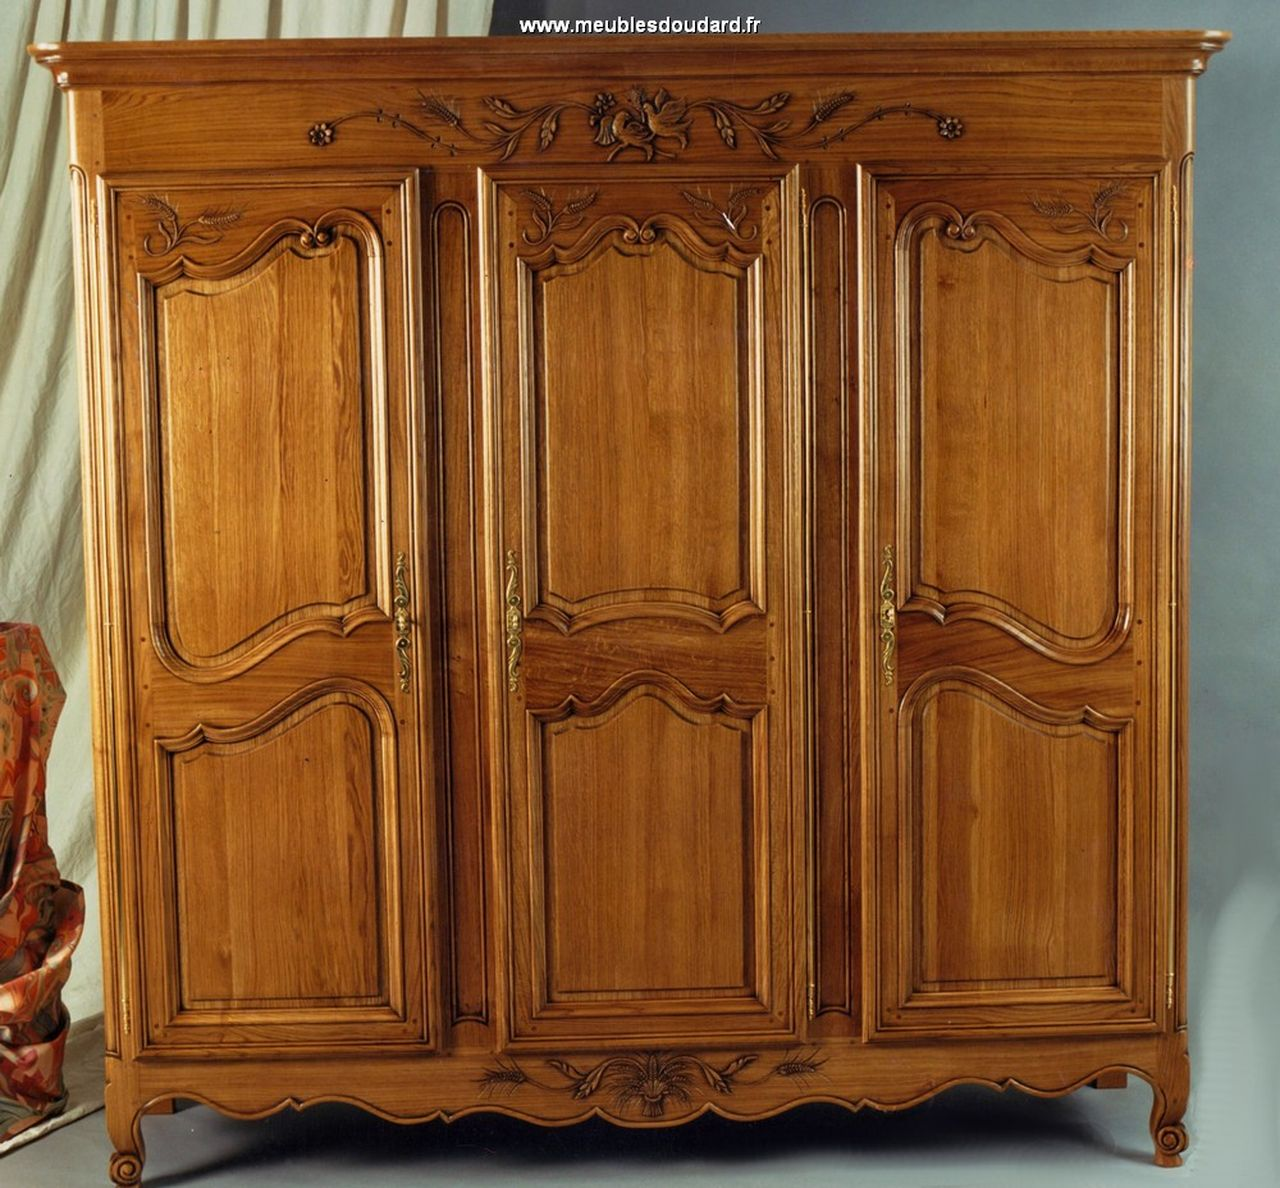 armoire en ch ne grande armoire en bois massif armoire 3 portes avec sculpture. Black Bedroom Furniture Sets. Home Design Ideas